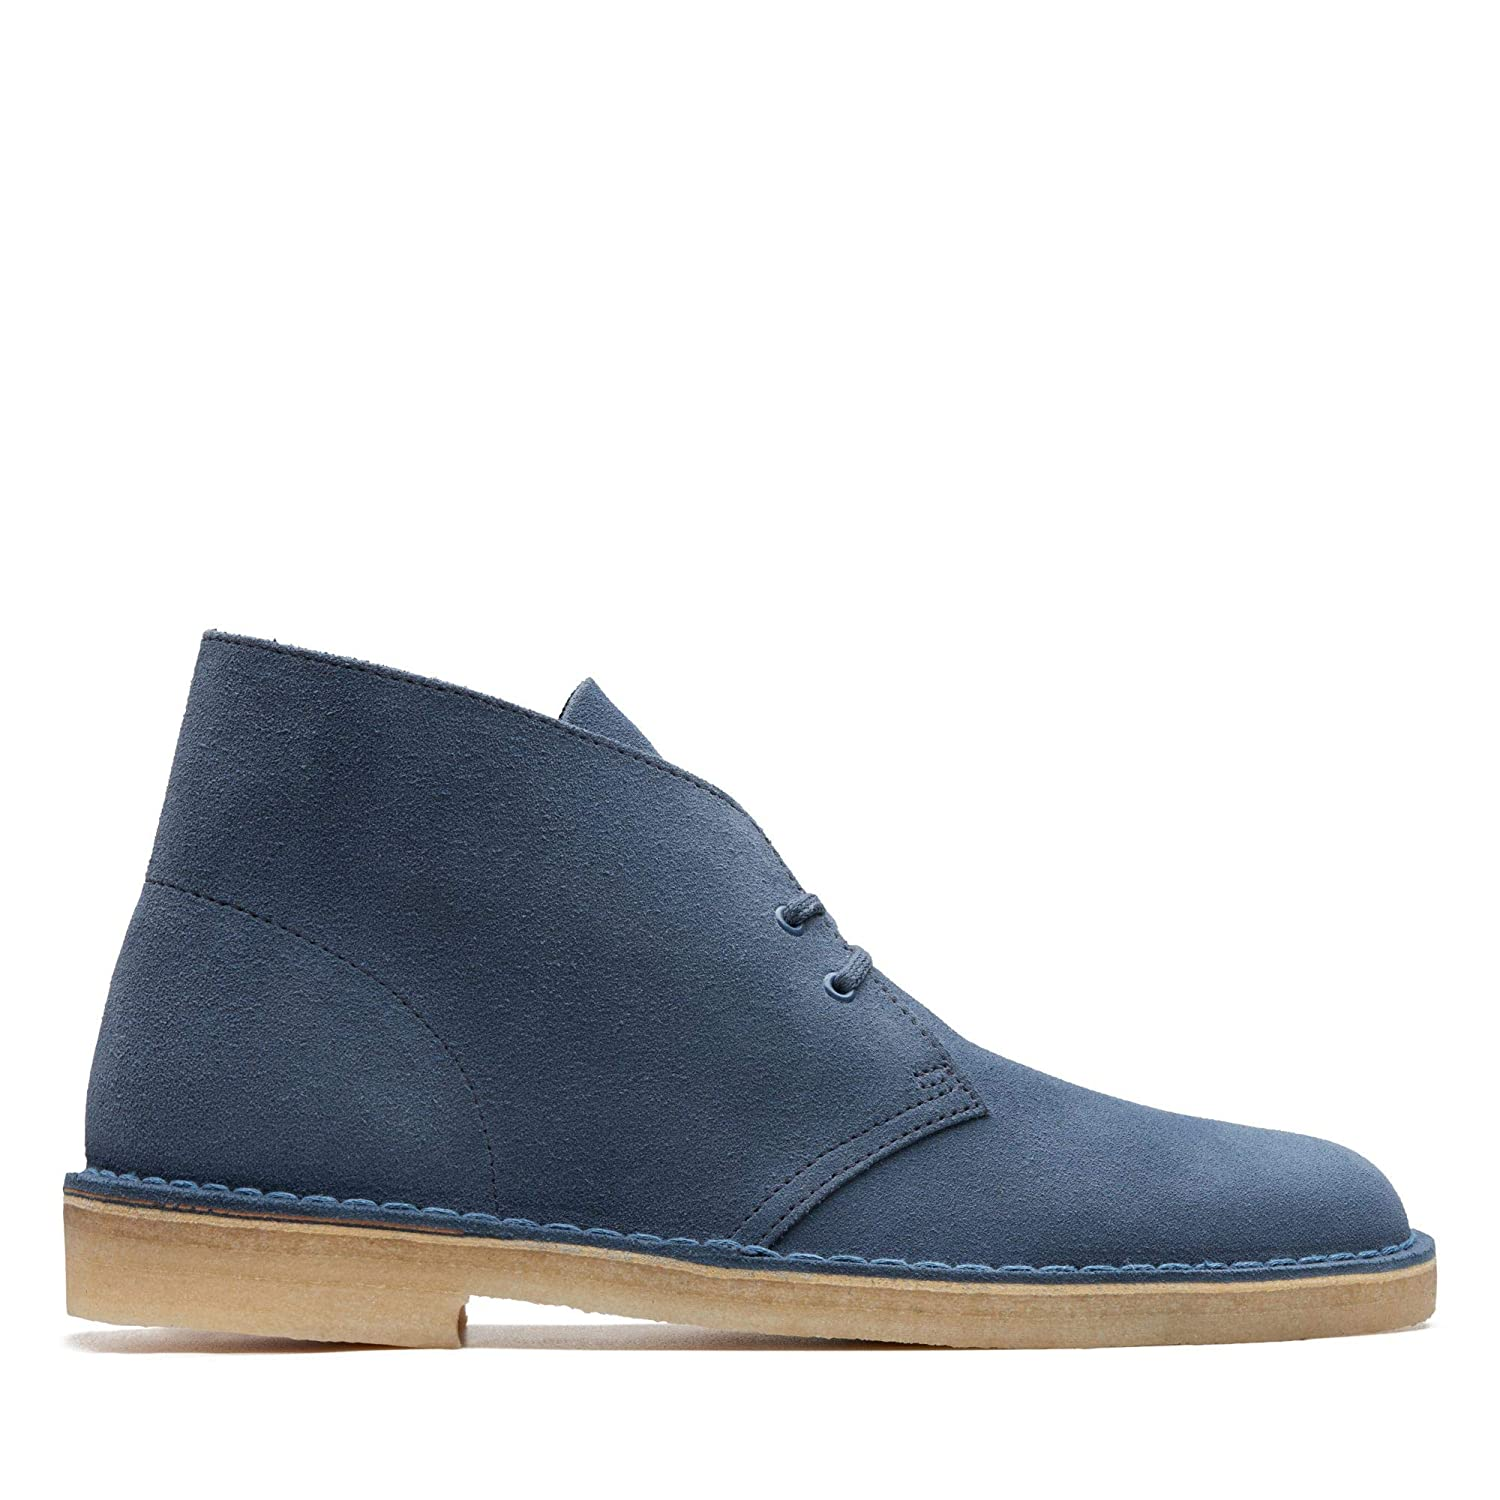 97d49e8374d621 Clarks Originals Men's Desert Boot Derbys: Amazon.co.uk: Shoes & Bags